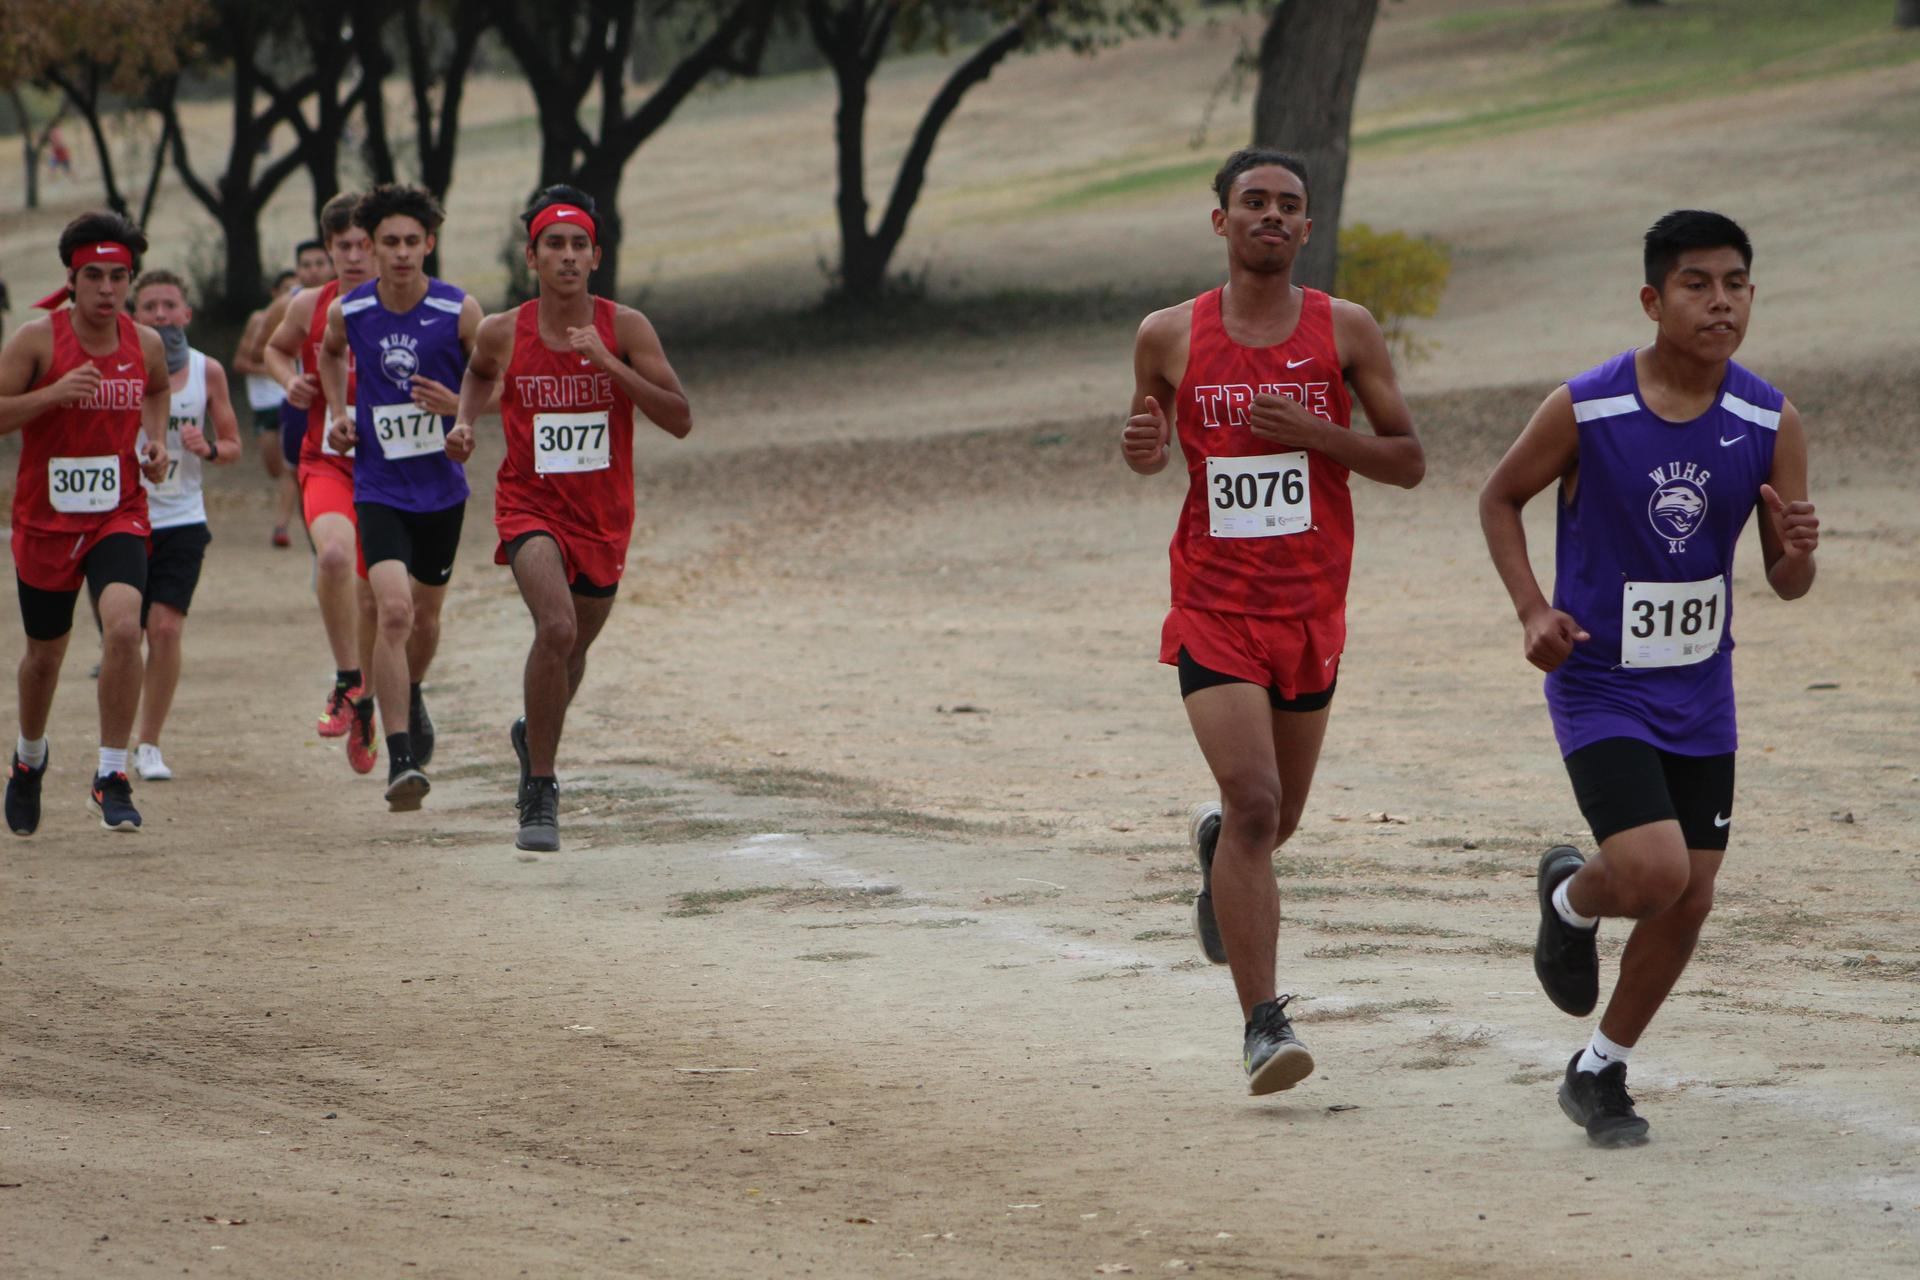 Lawerence Luna, Nicholas Martinez, and Raymond Mendoza racing at woodward park